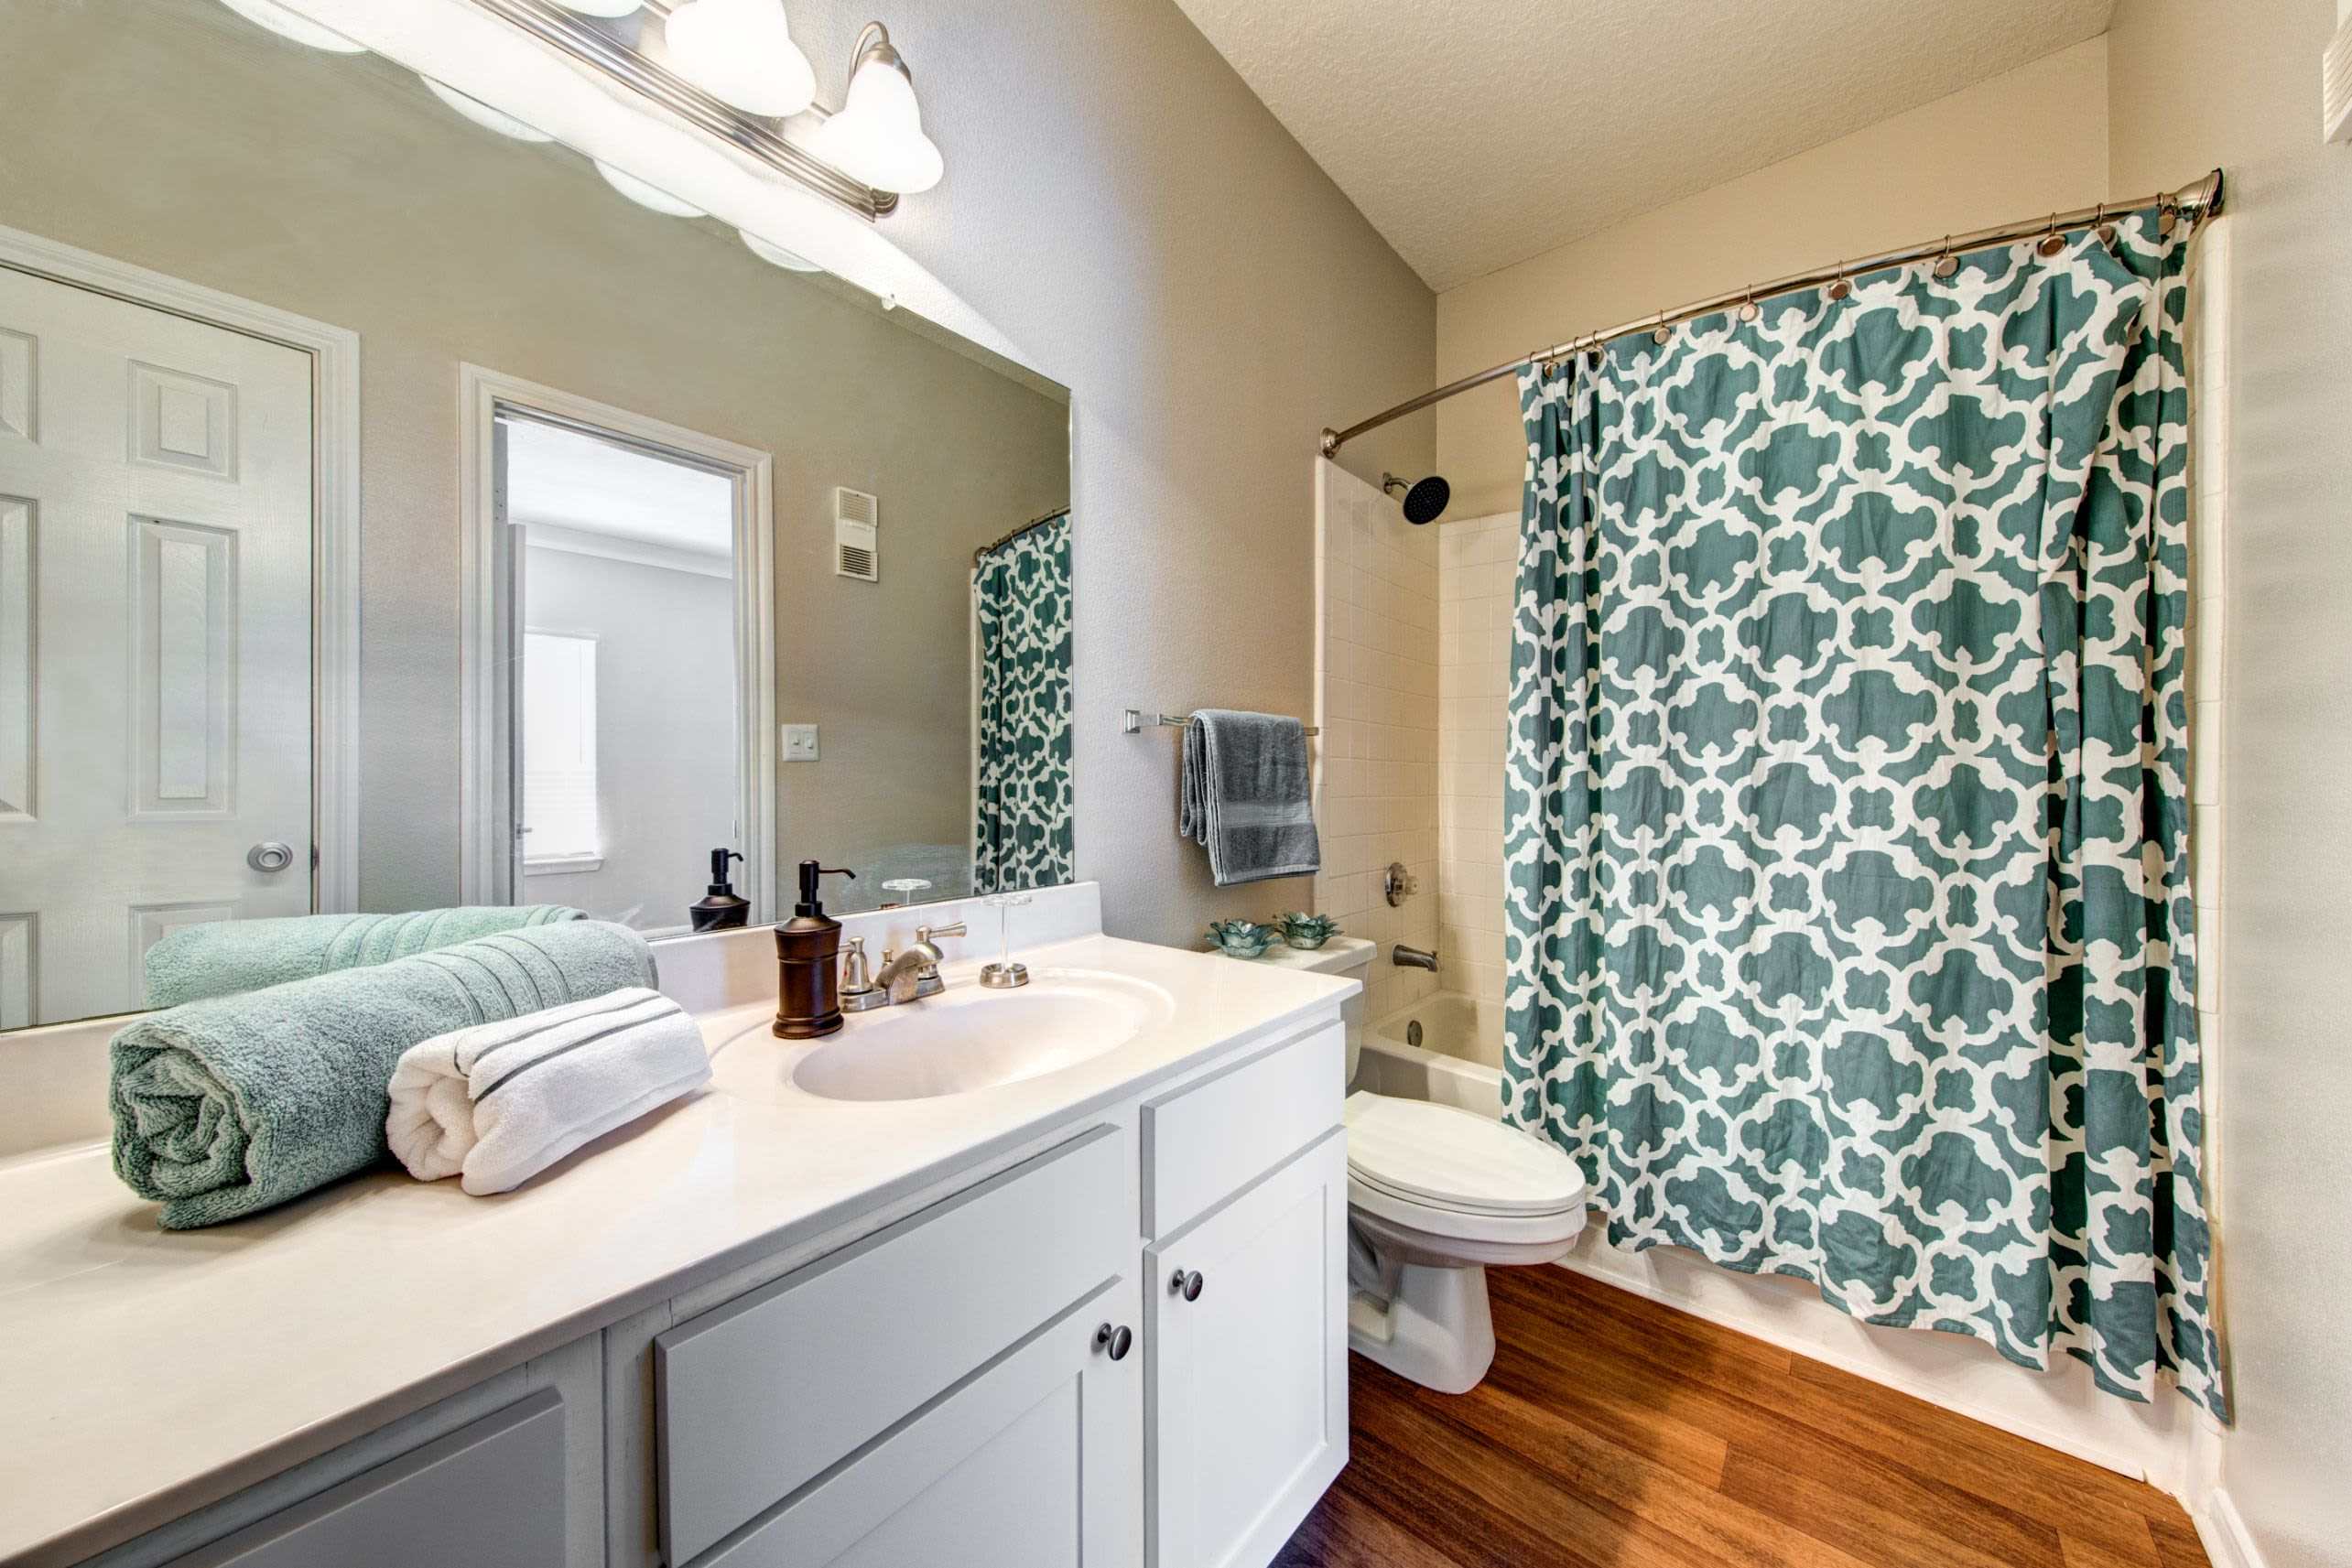 Spacious bathroom with white cabinets and counters at Marquis at Silverton in Cary, North Carolina